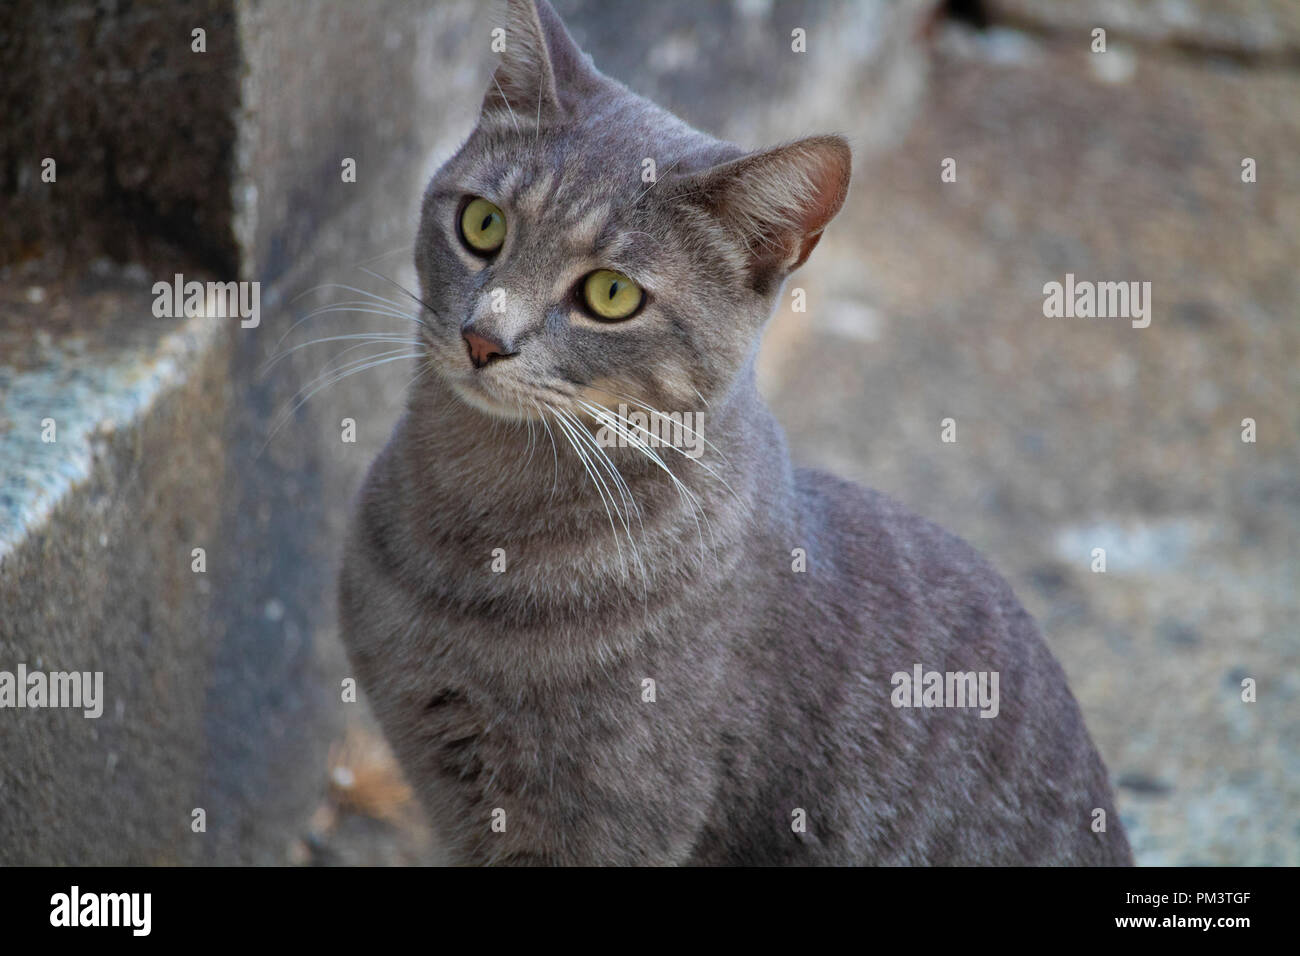 Awesome cute isolated grey cat portrait on street Stock Photo